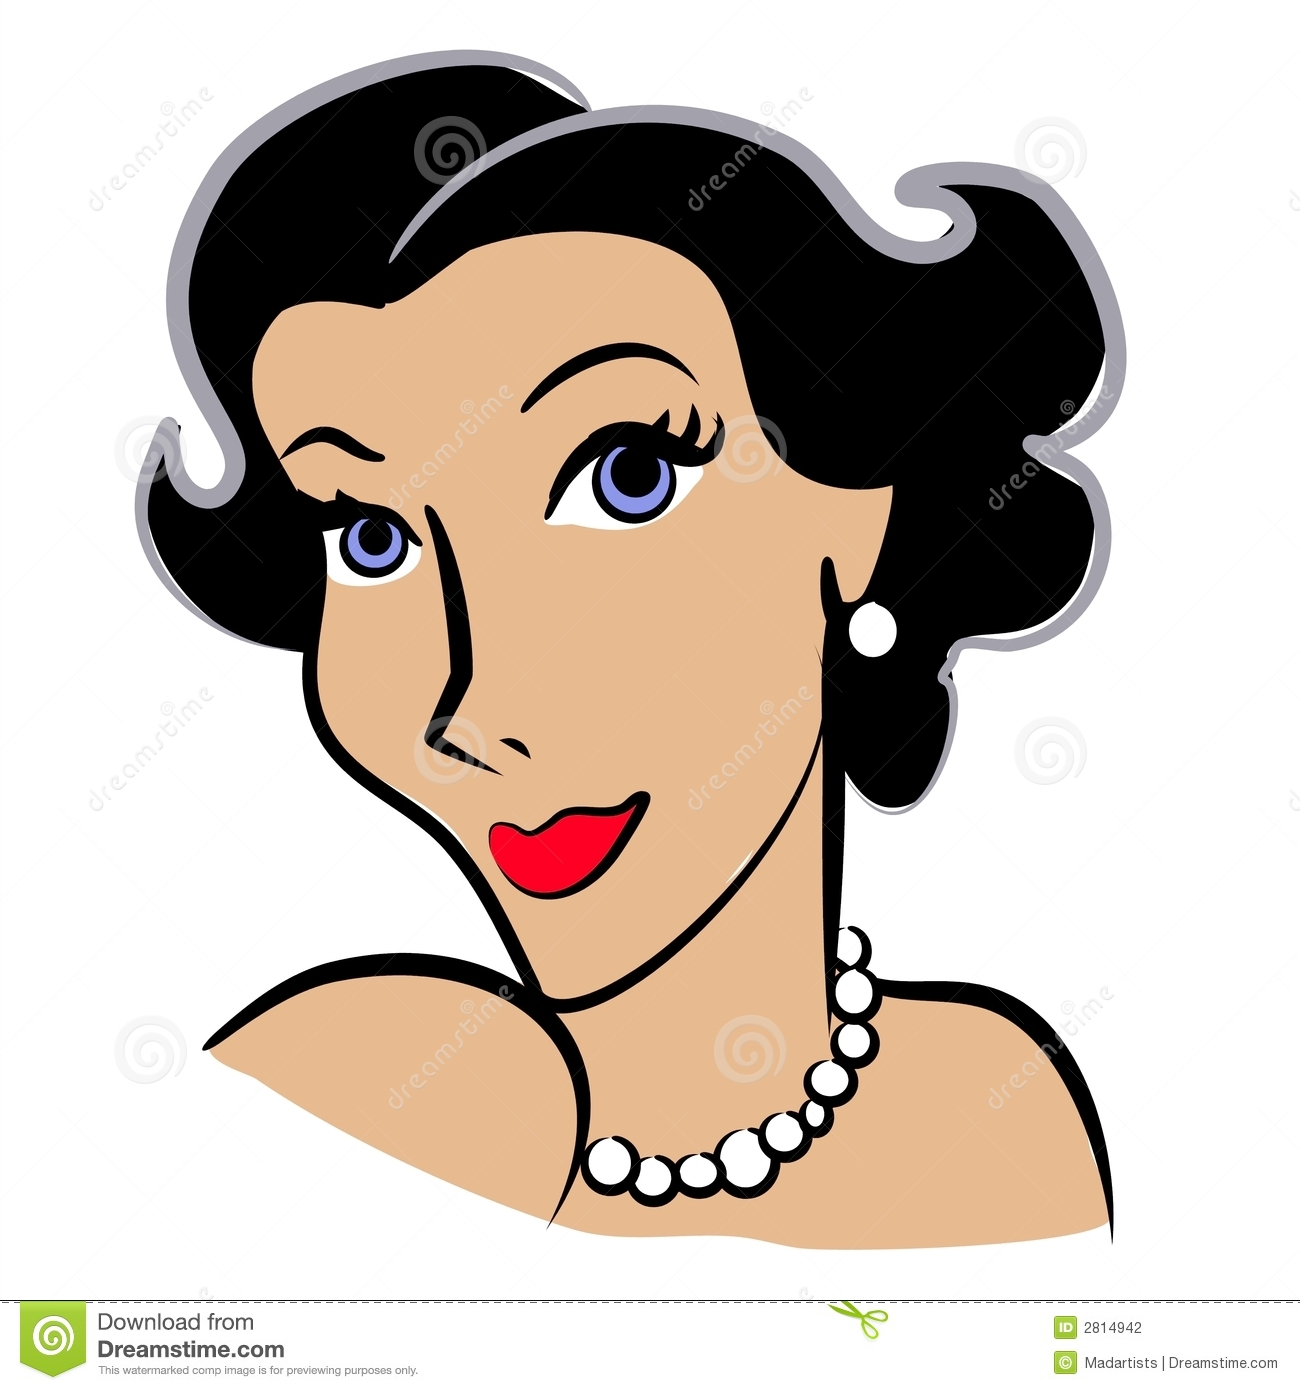 Faces Of Women Clip Art 2 Royalty Free Stock Photography - Image .